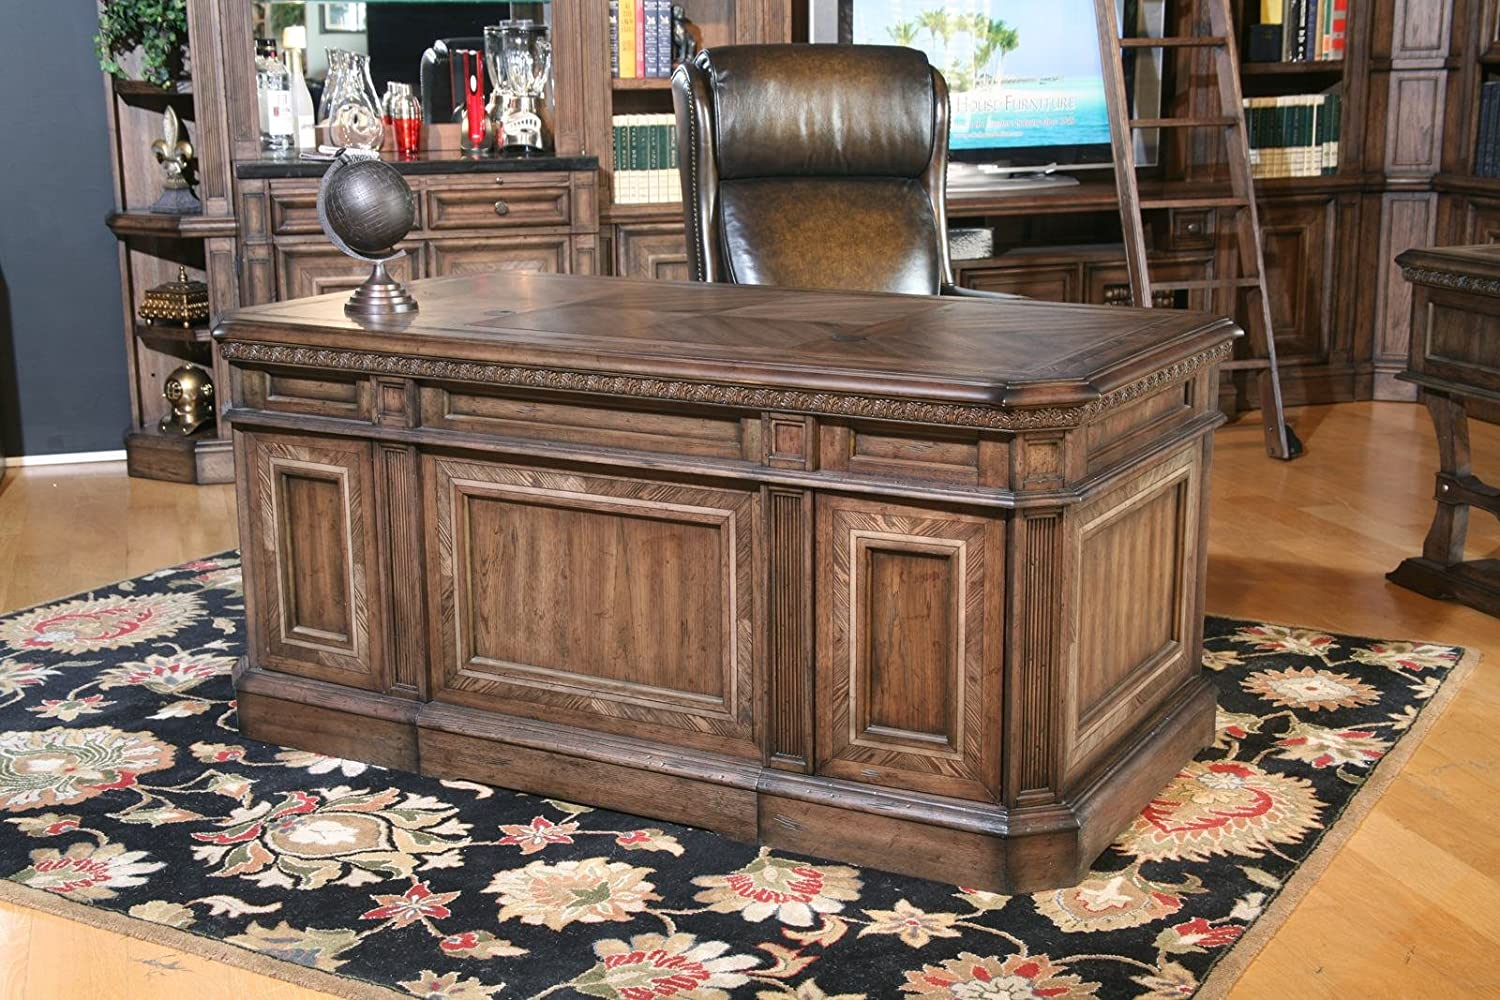 Amazon.com: Parker House Aria Library Double Pedestal Executive Desk - Antique  Vintage Smoked Pecan: Kitchen & Dining - Amazon.com: Parker House Aria Library Double Pedestal Executive Desk